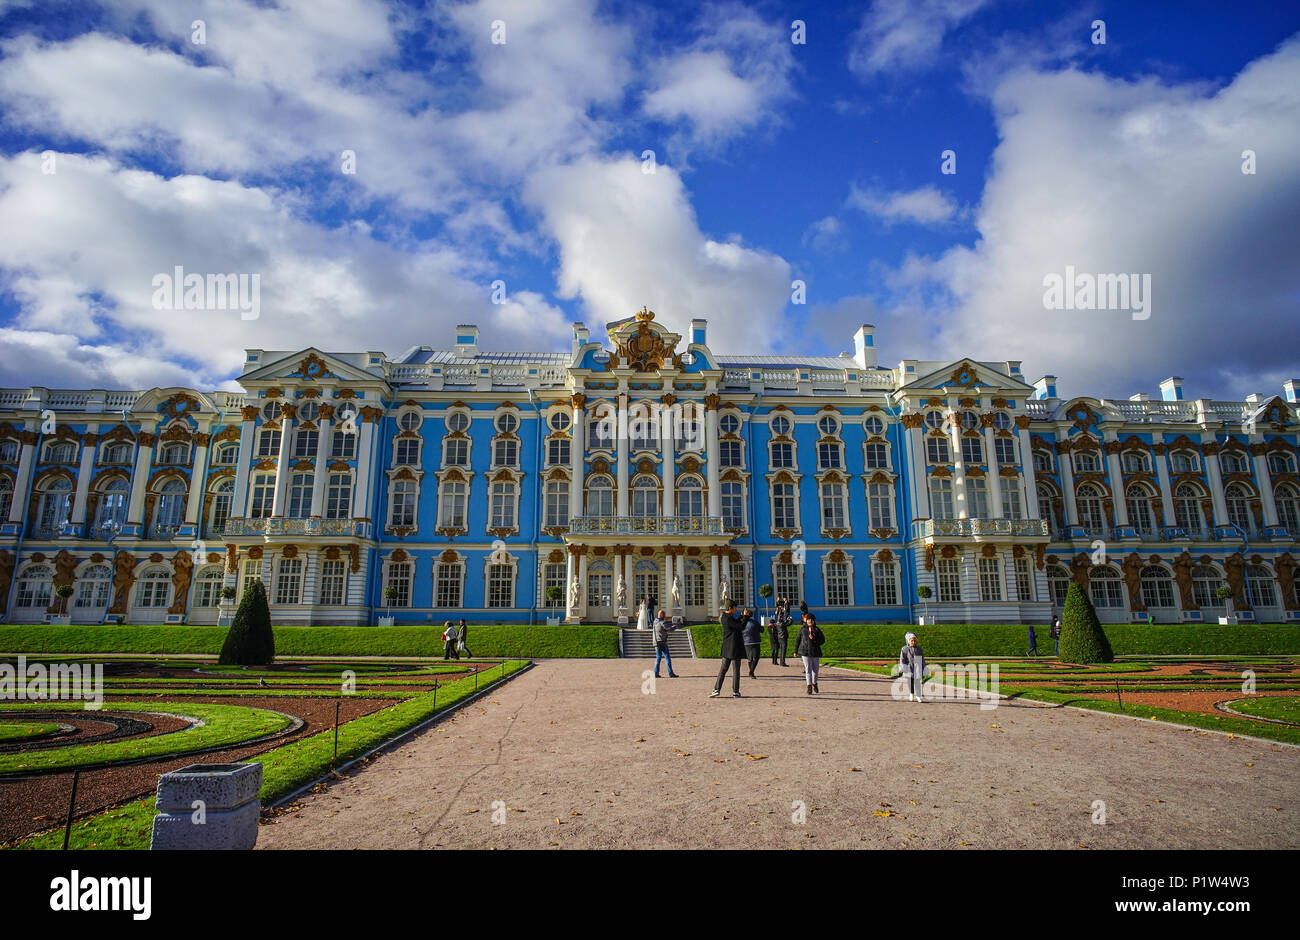 St. Petersburg, Russia - Oct 7, 2016. View of Catherine Palace in St. Petersburg, Russia. It known until 1910 as the Great Palace of Tsarskoye Selo. - Stock Image